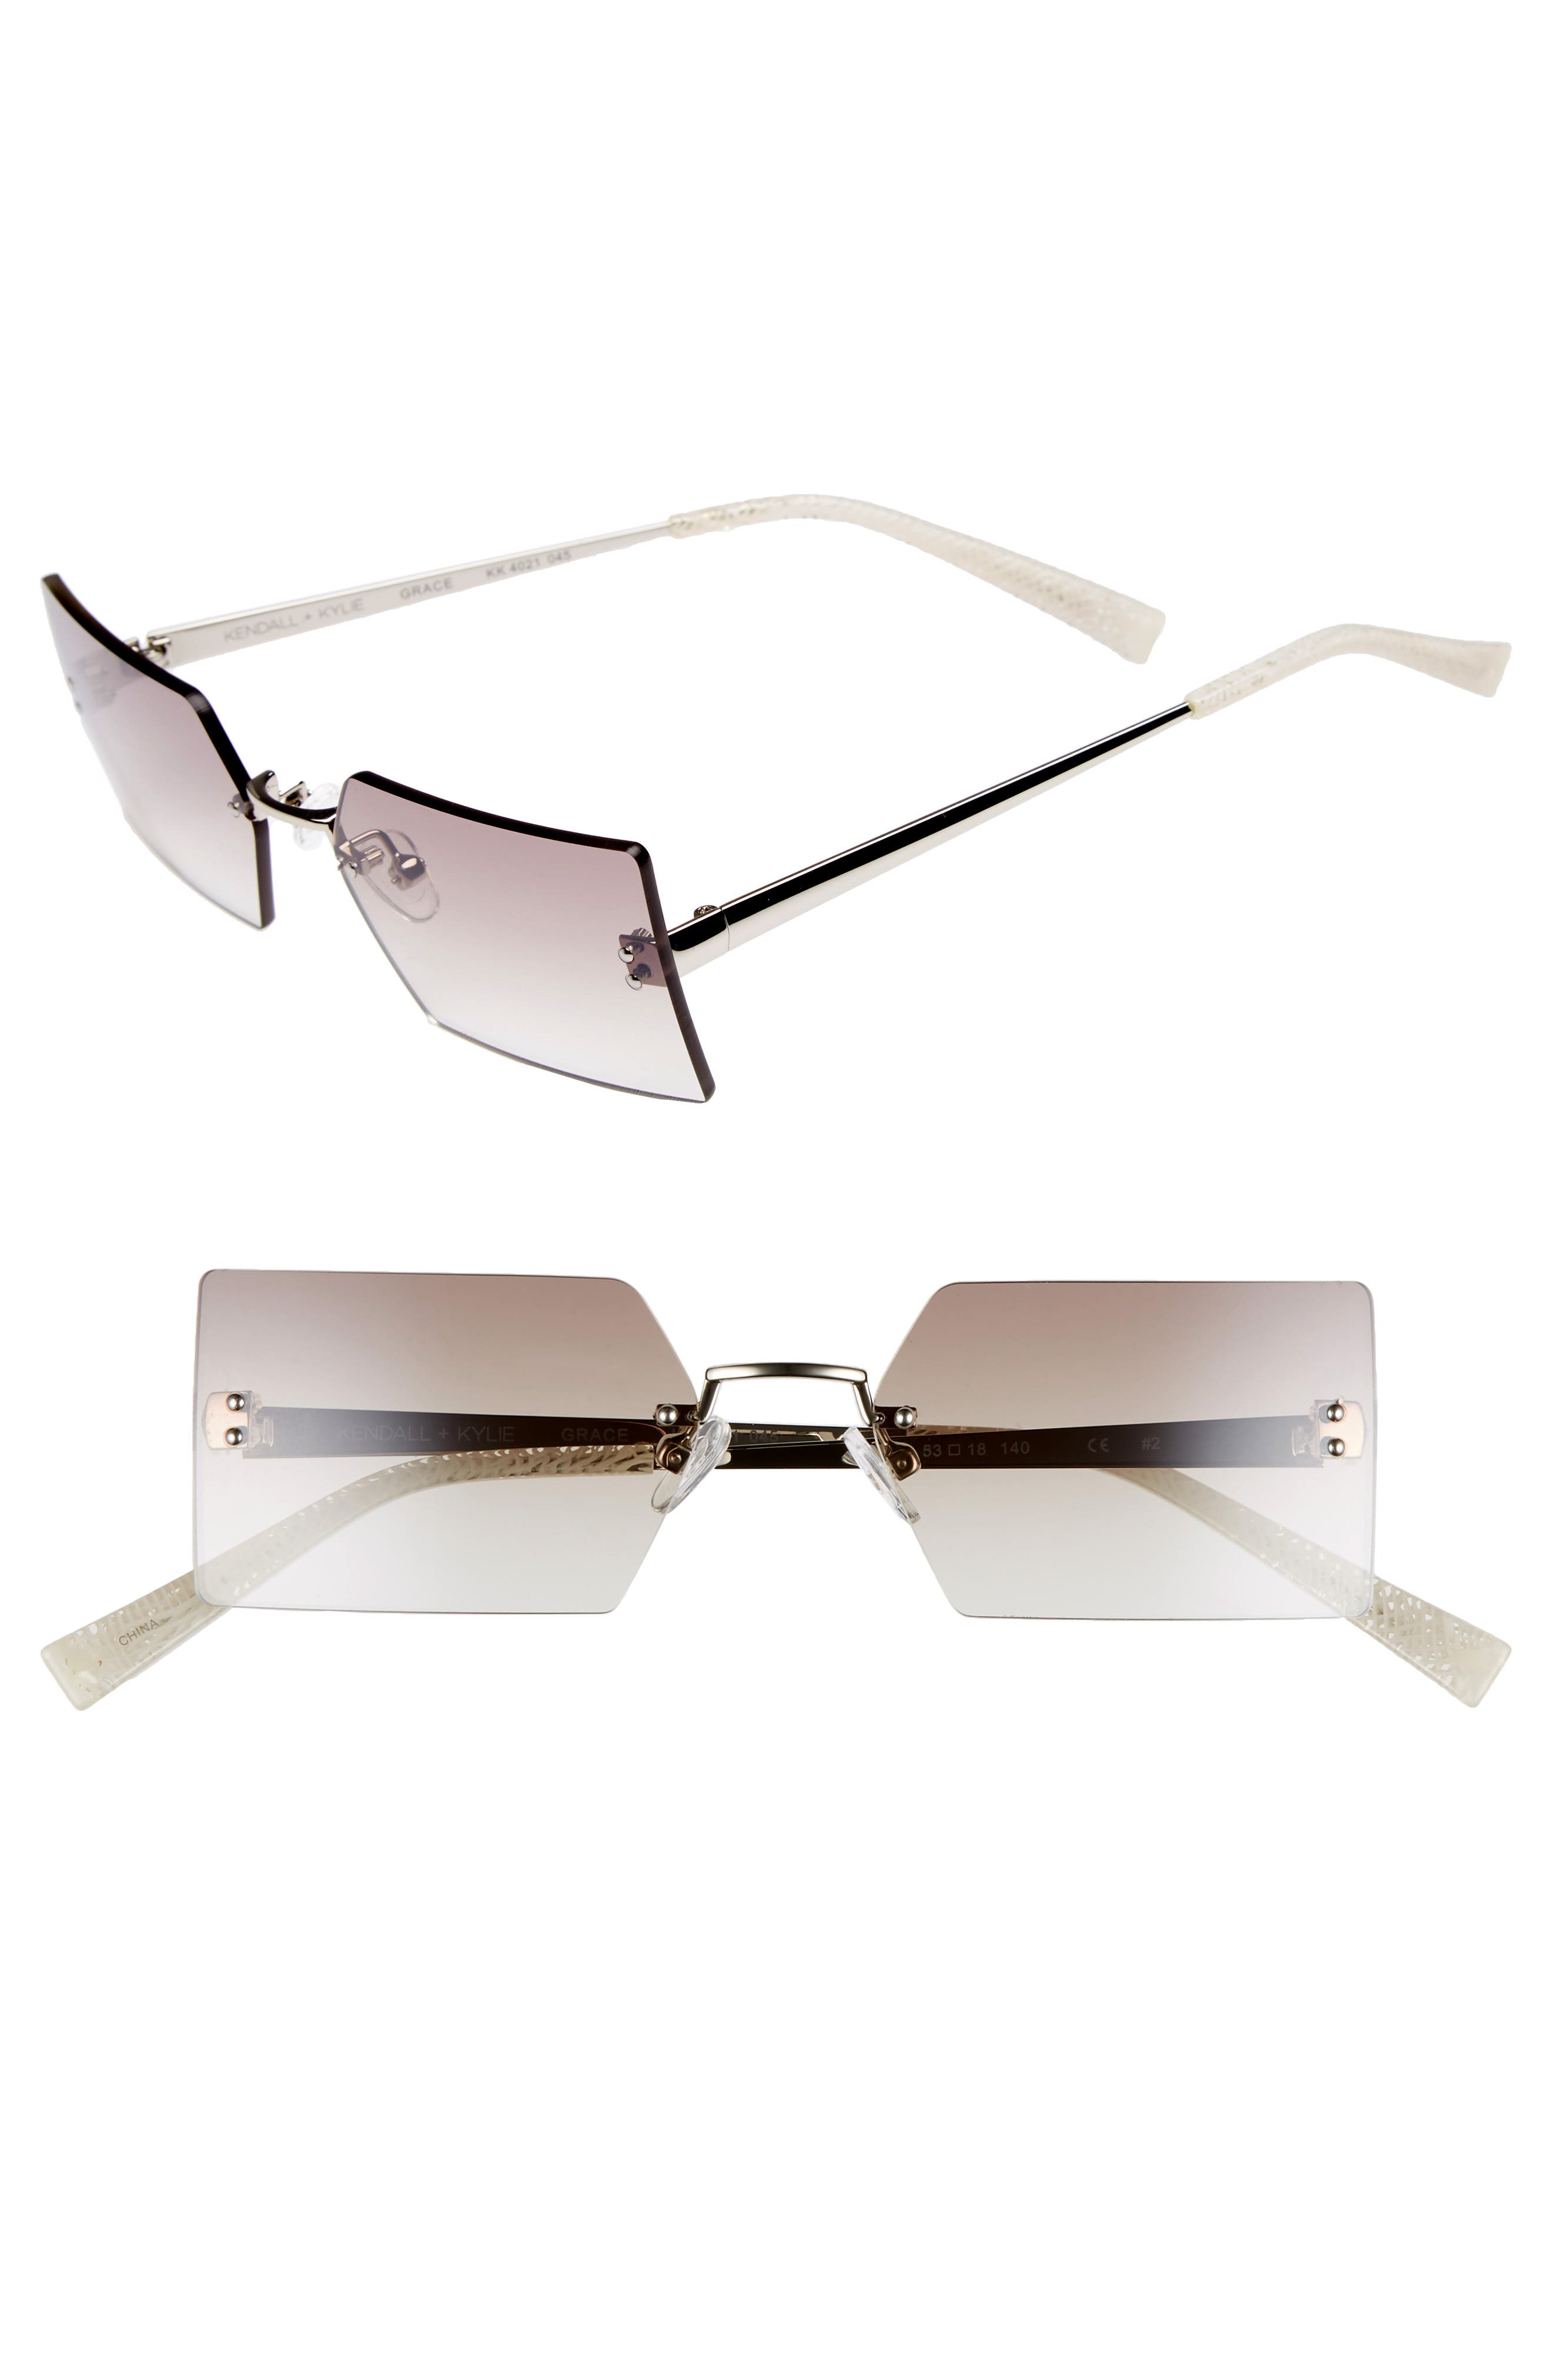 Grace 53mm Rimless Rectangular Sunglasses,                         Main,                         color, SILVER/ BROWN/ CLEAR GRADIENT